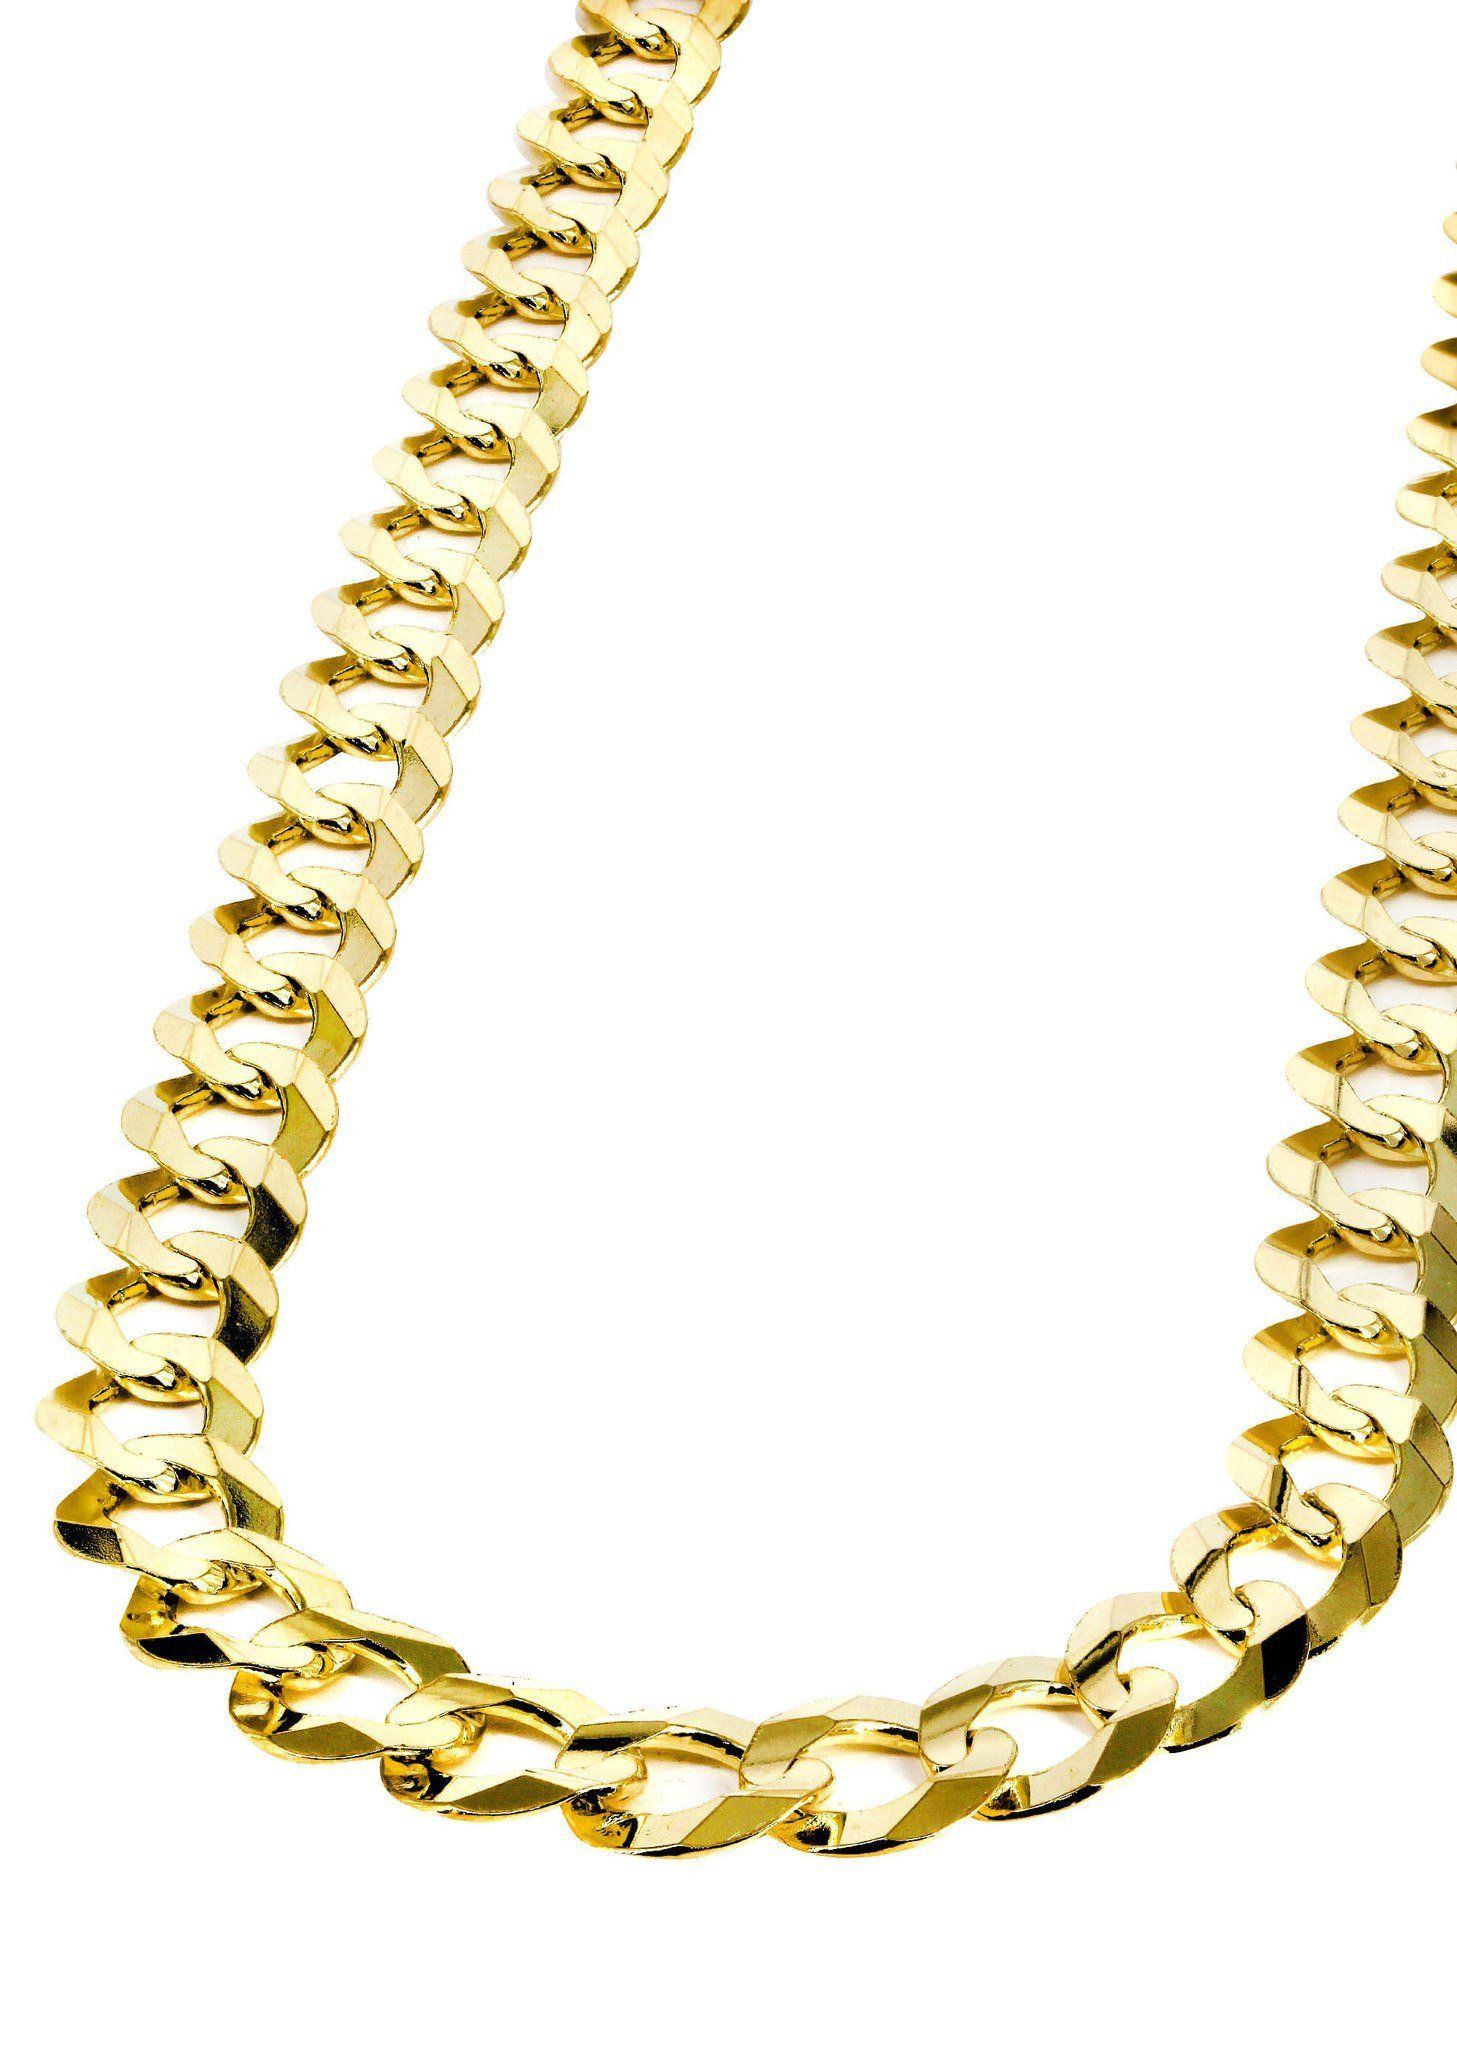 Mens Gold Chain Solid Cuban Link 10k Gold Gold Chains For Men Chains For Men Gold Chains